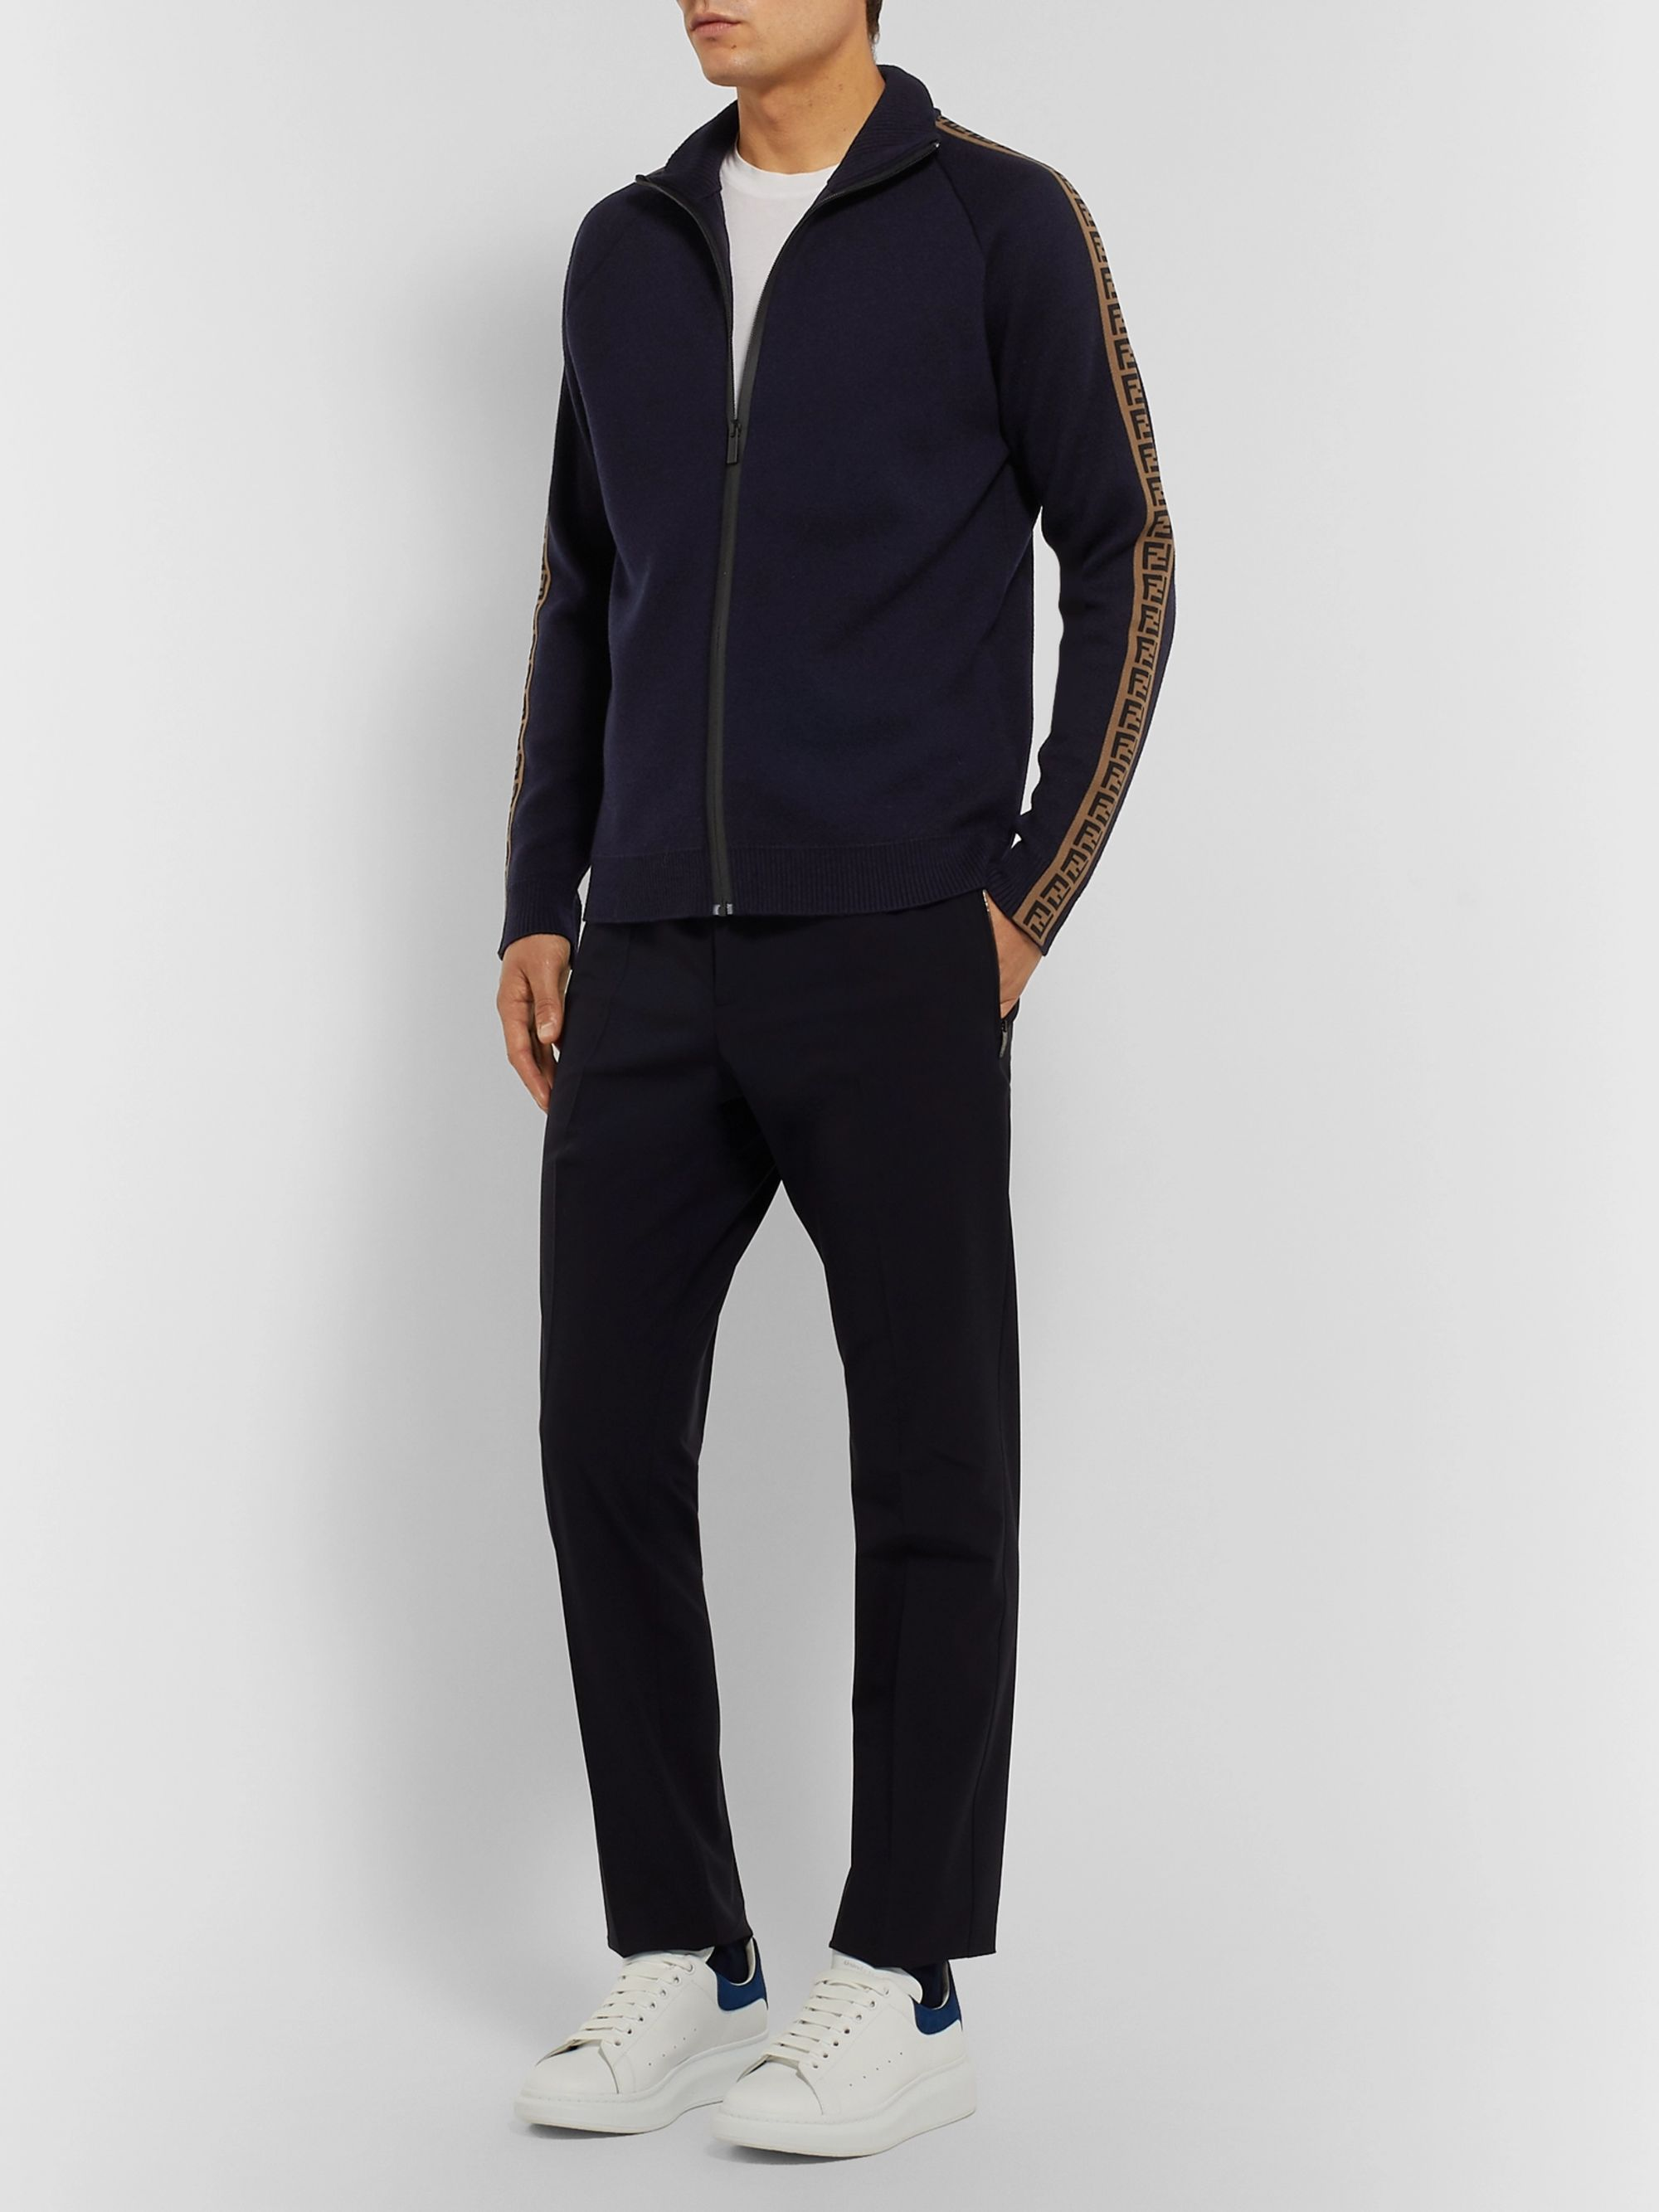 Fendi Slim-Fit Logo-Trimmed Wool Zip-Up Sweater